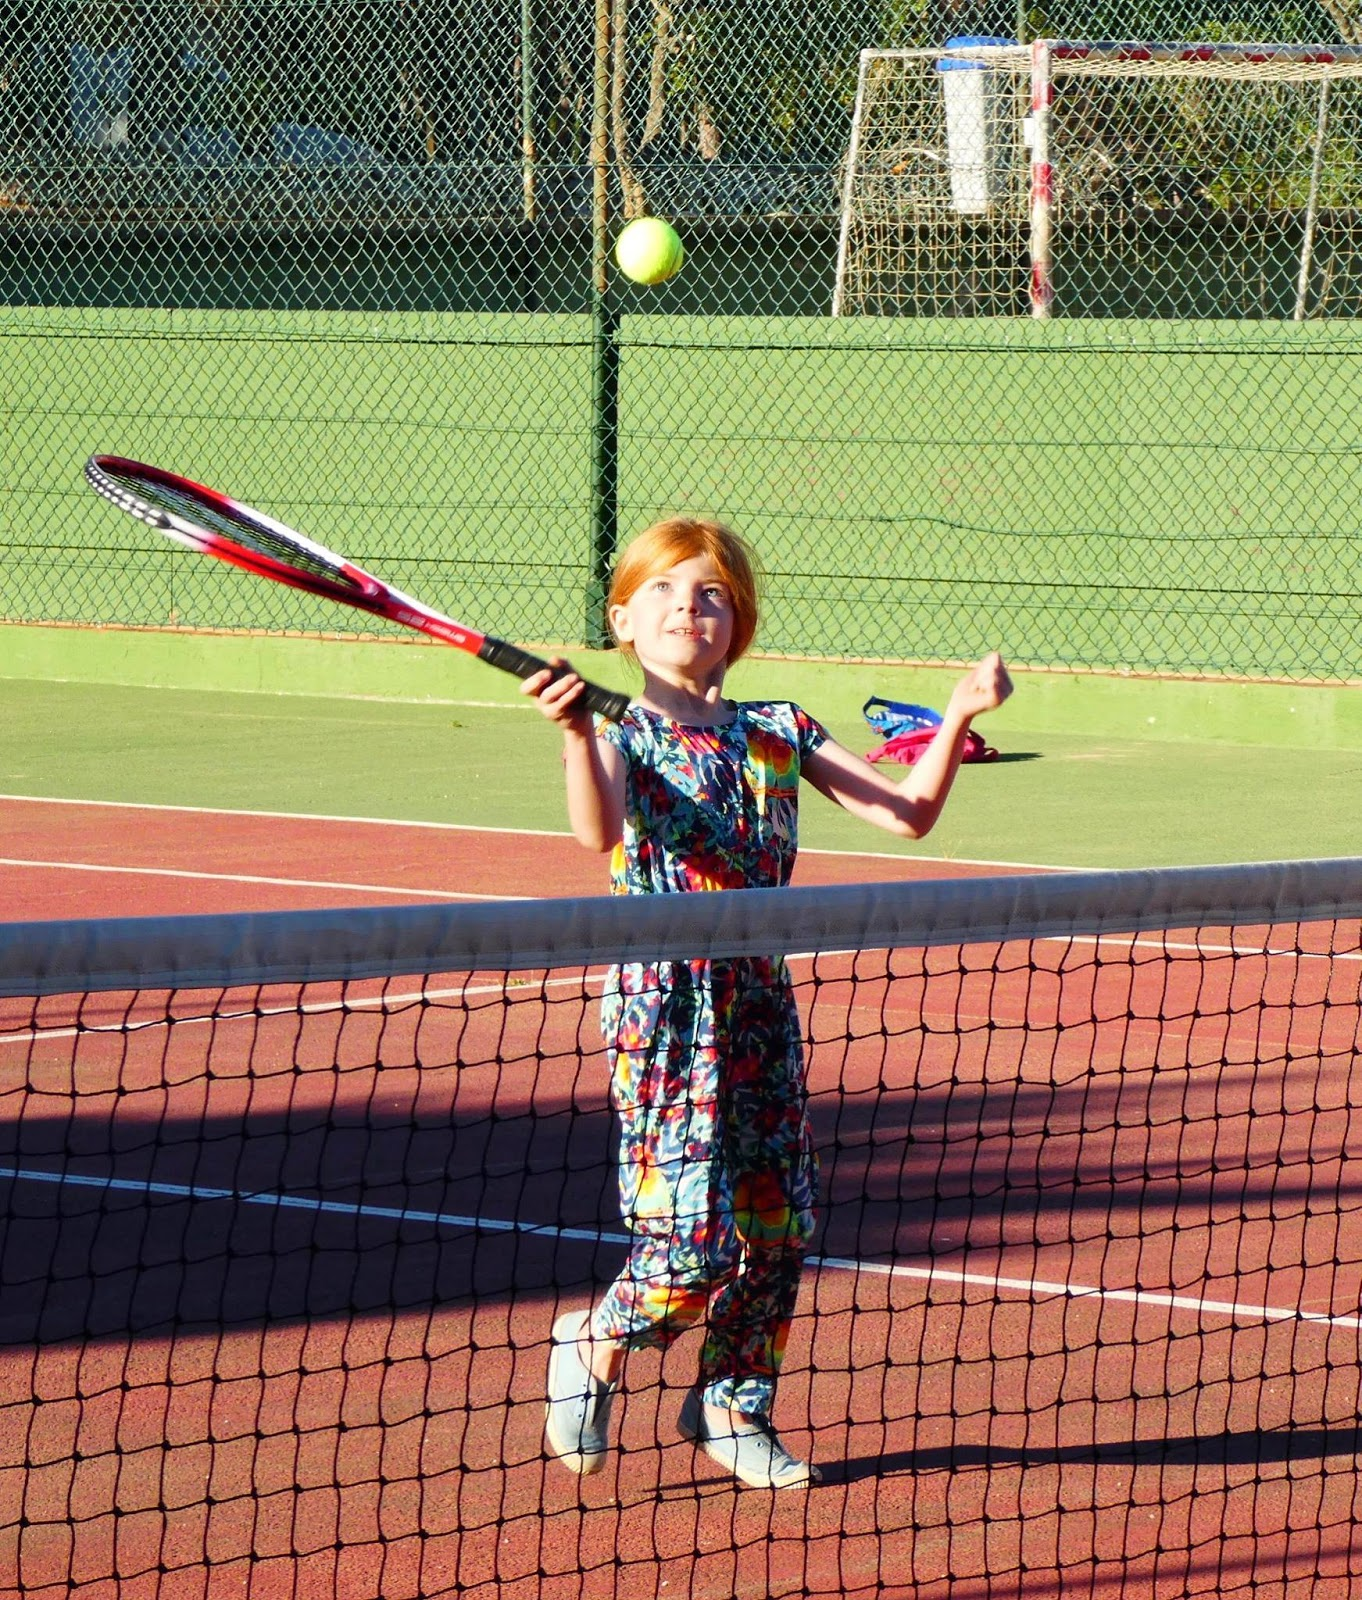 How to access free tennis sessions for kids across the North East this summer with LTA and #TennisForKids - girl playing tennis